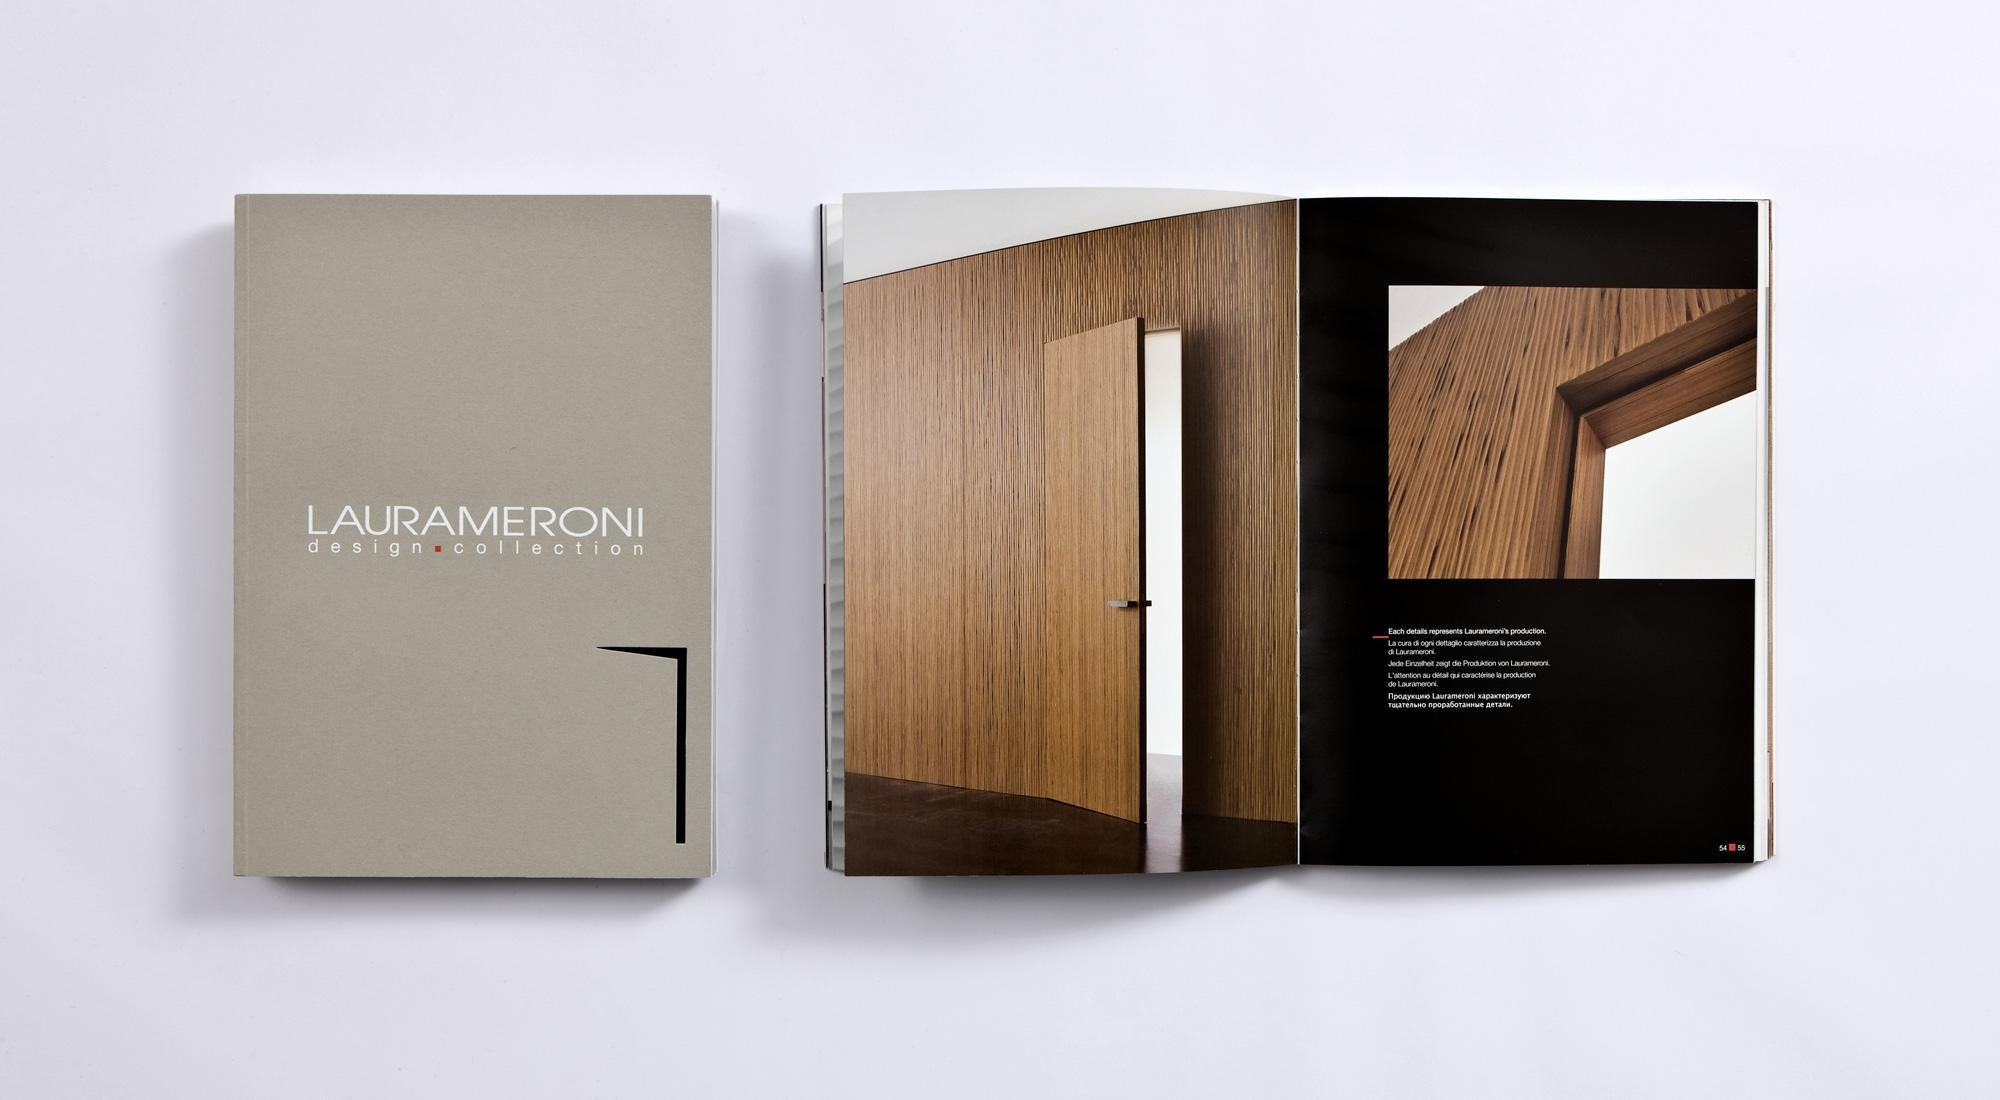 laurameroni luxury modern custom-made integrated doors and wall panels catalogue free download